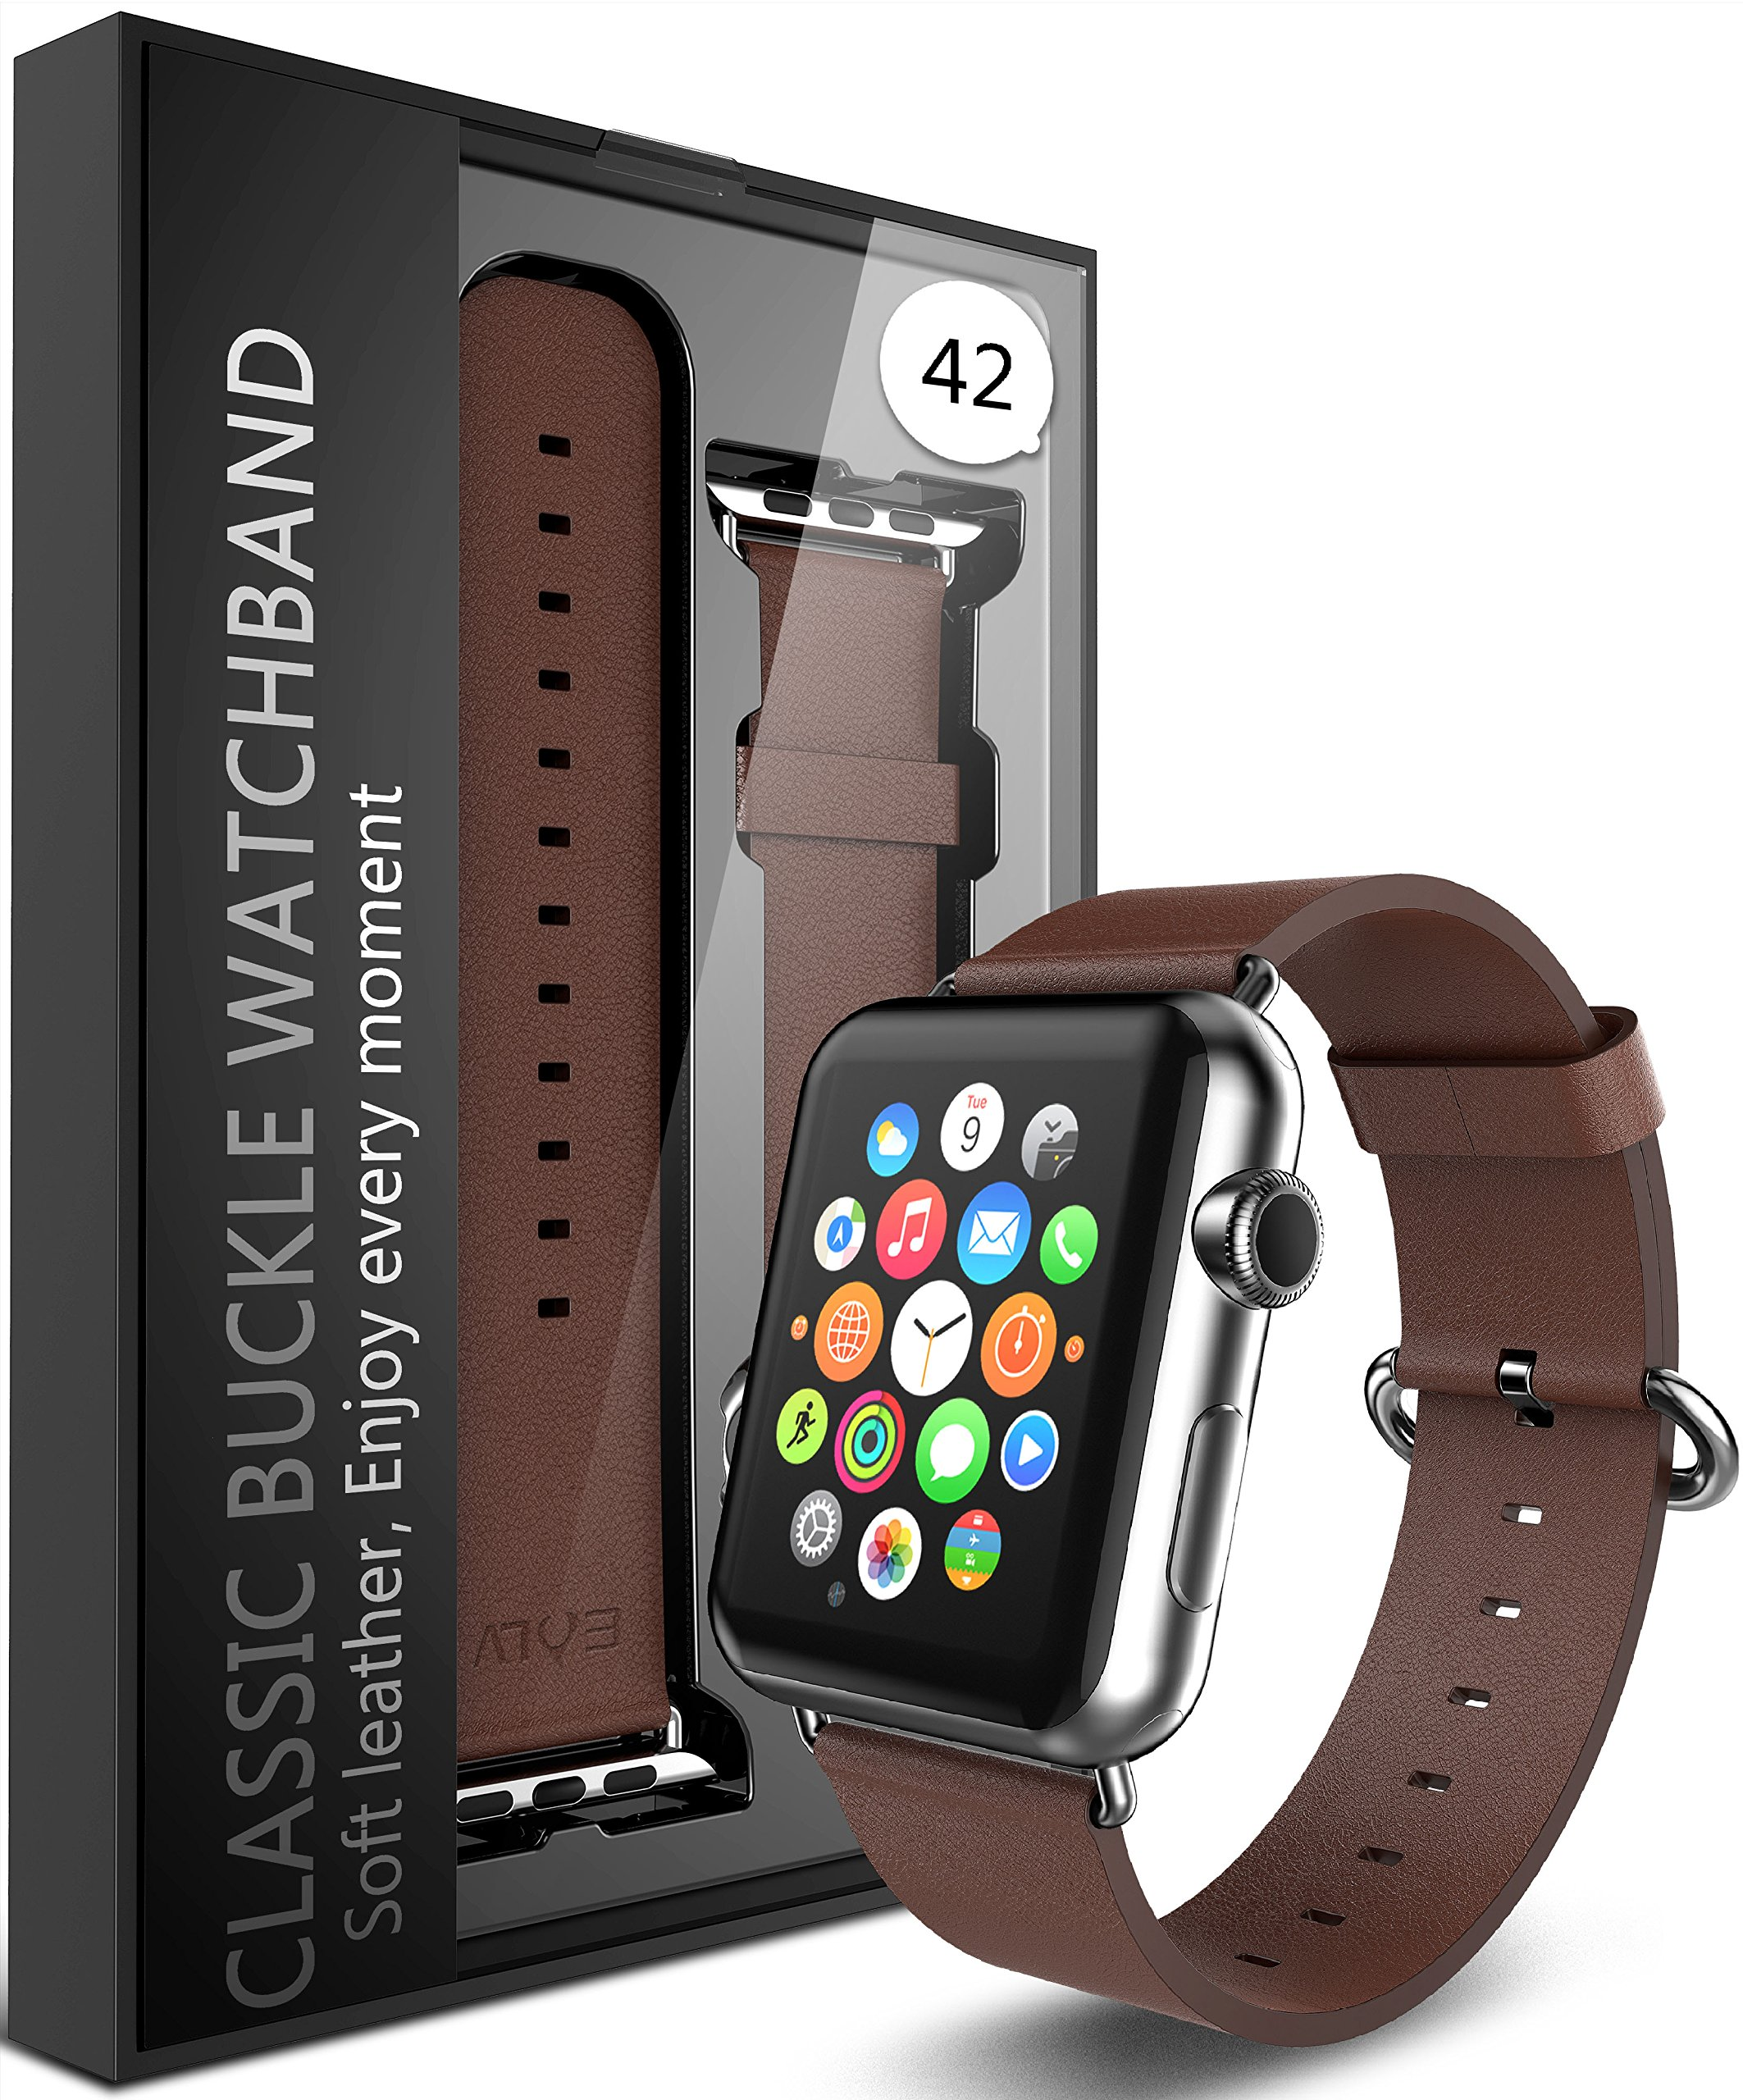 E LV Watch Leather Strap Band with Adapter for Apple Watch 42mm - Brown